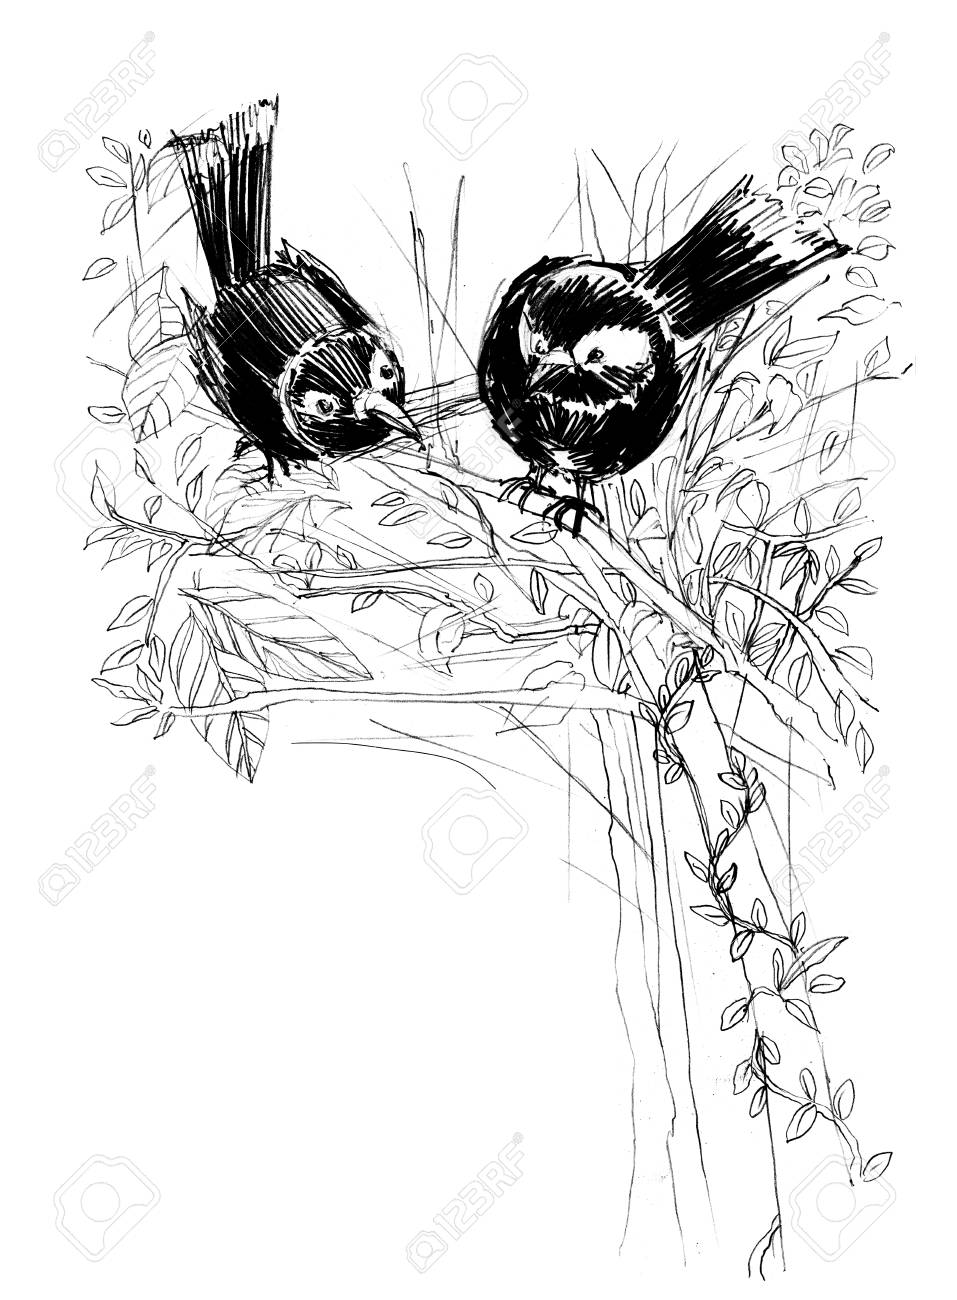 Magpie bird with love cute acting design pencil sketch from real